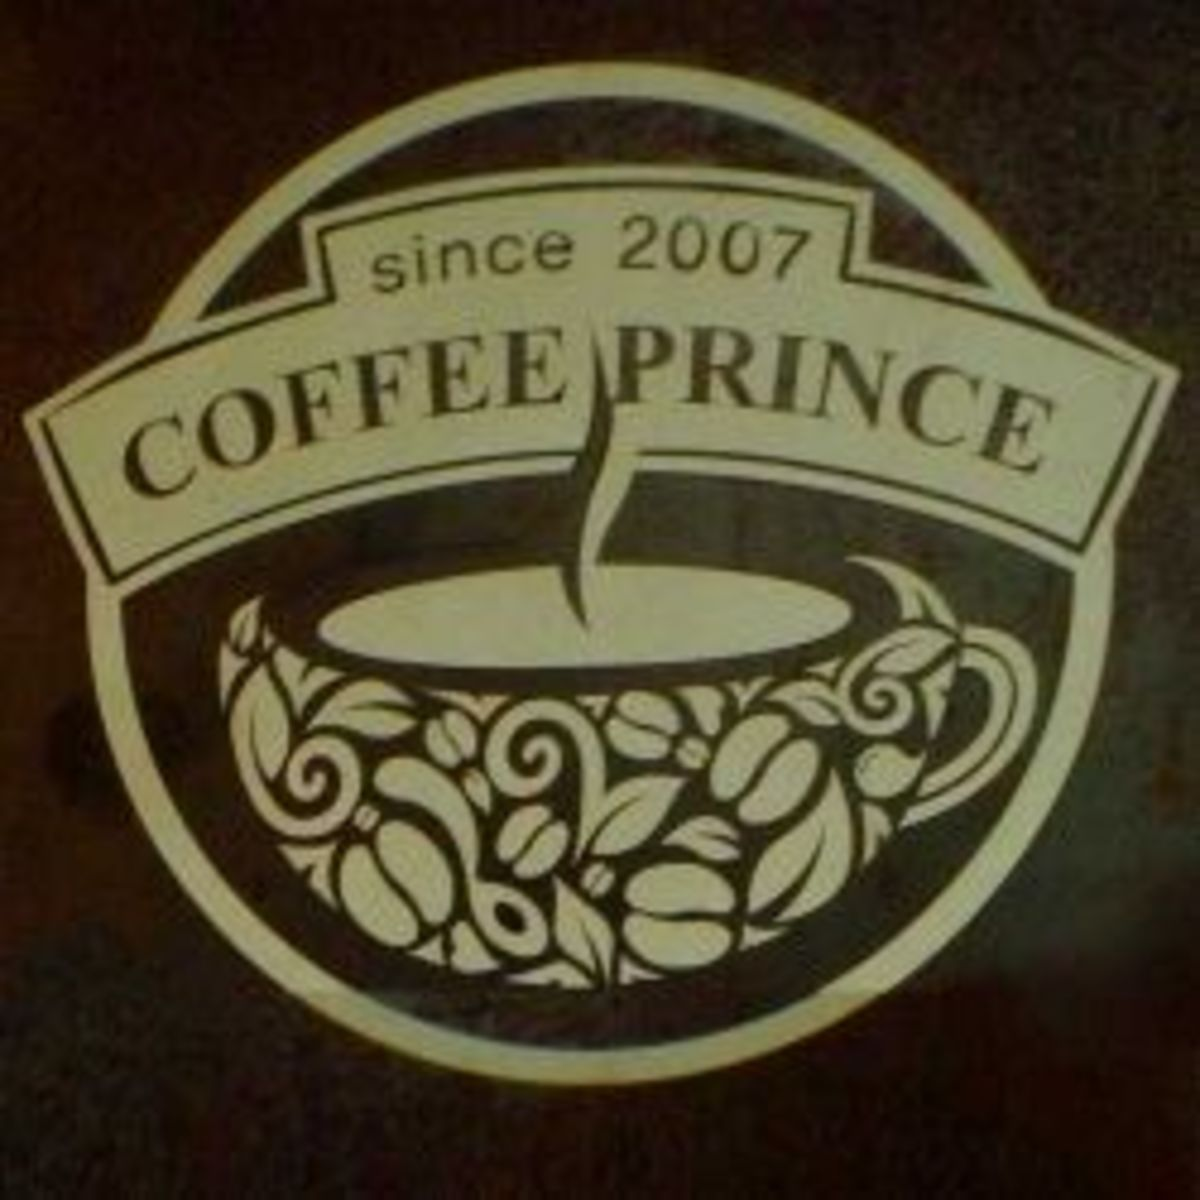 Visit The Coffee Prince Coffee Shop in Seoul, Korea